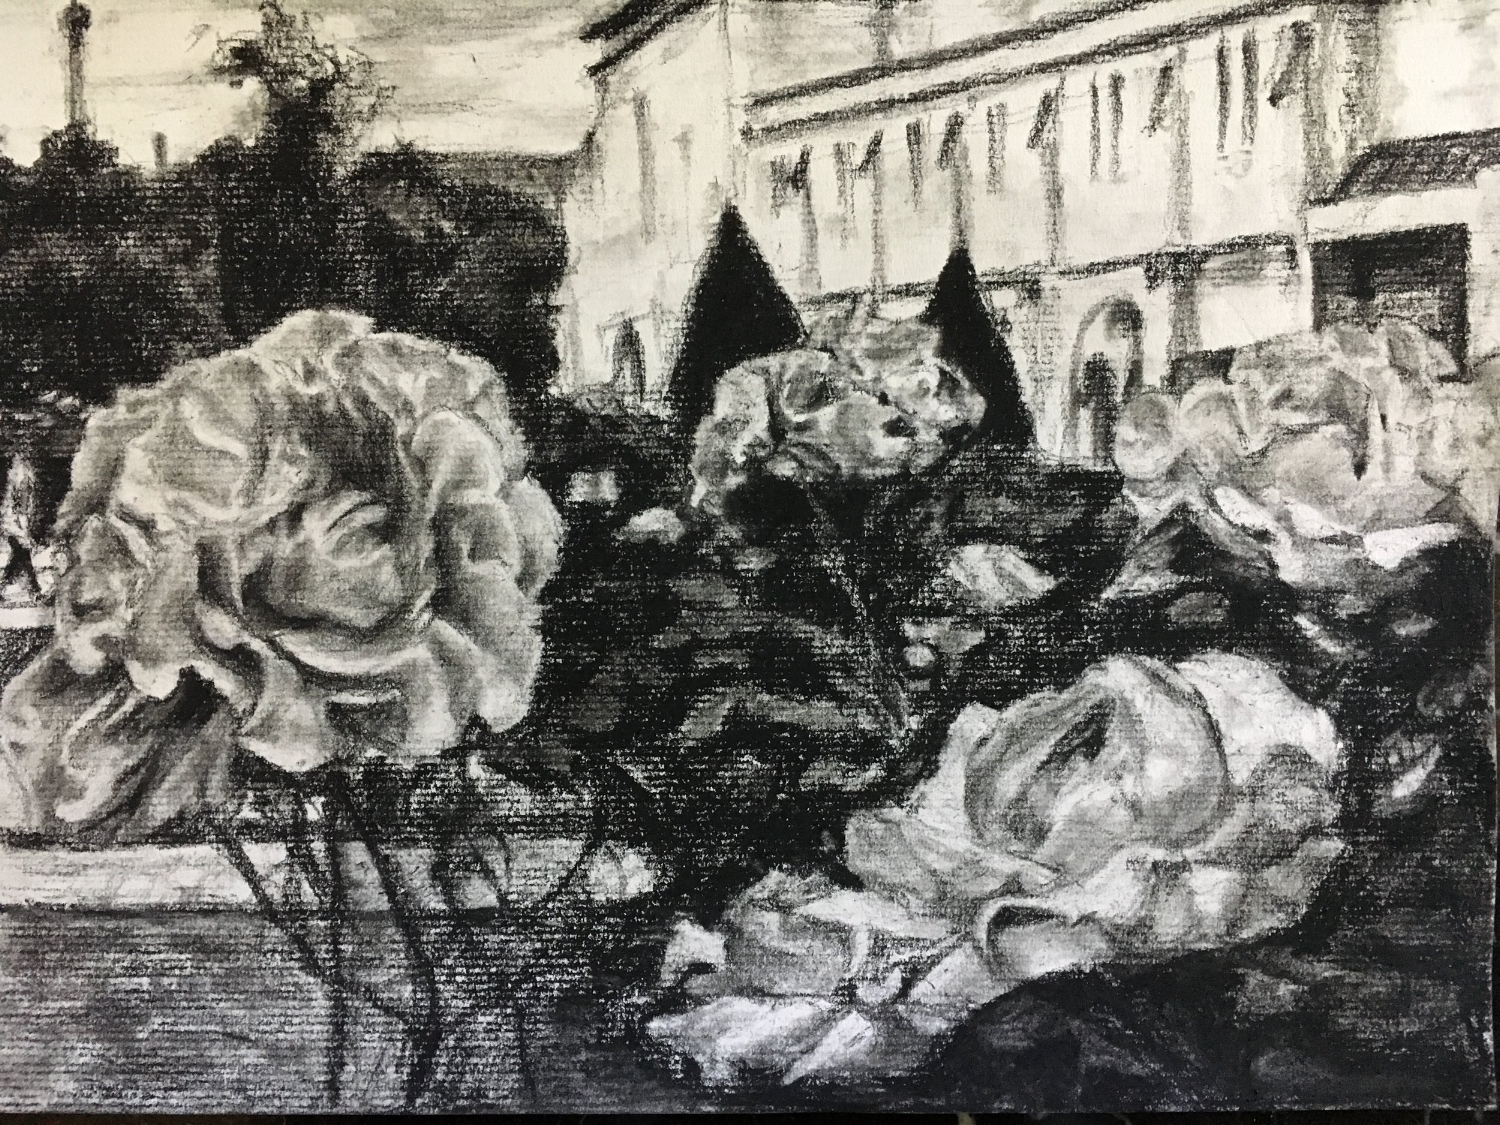 Roses within Garden at Musee Rodin in Paris